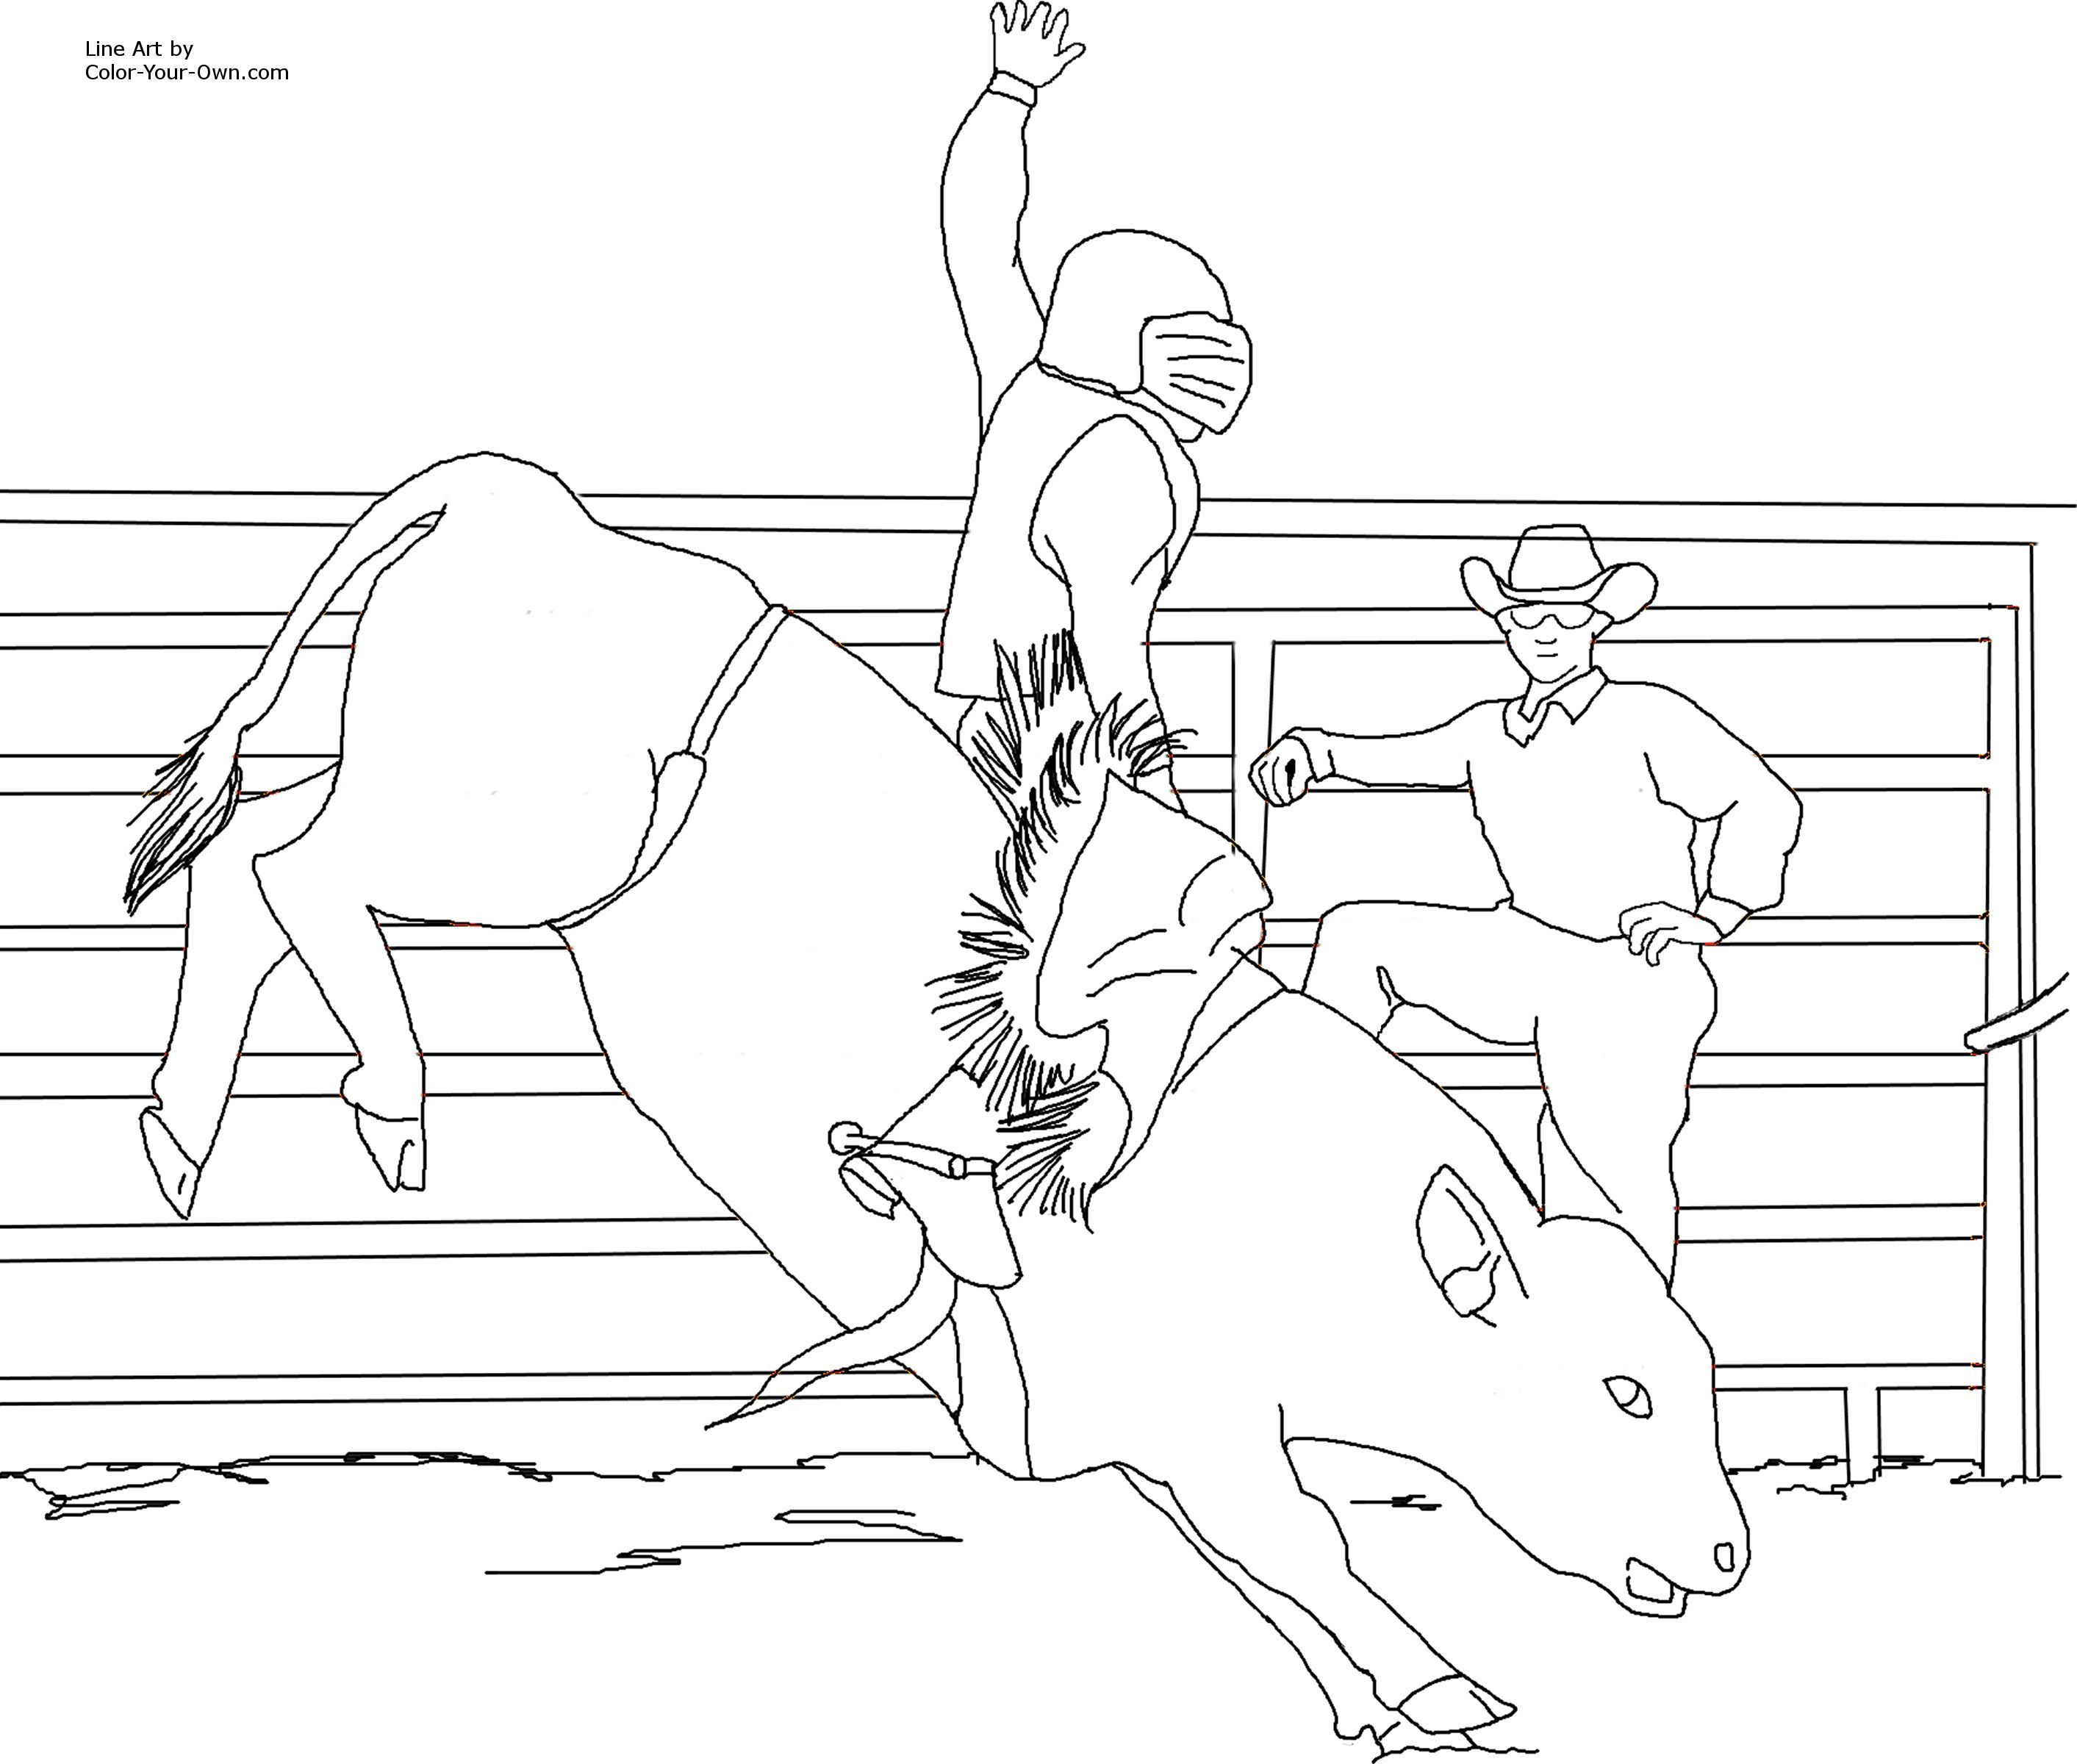 Bull Riding Coloring Pages Only Coloring Pages Horse Coloring Pages Coloring Pages Bucking Bulls [ 2400 x 2826 Pixel ]